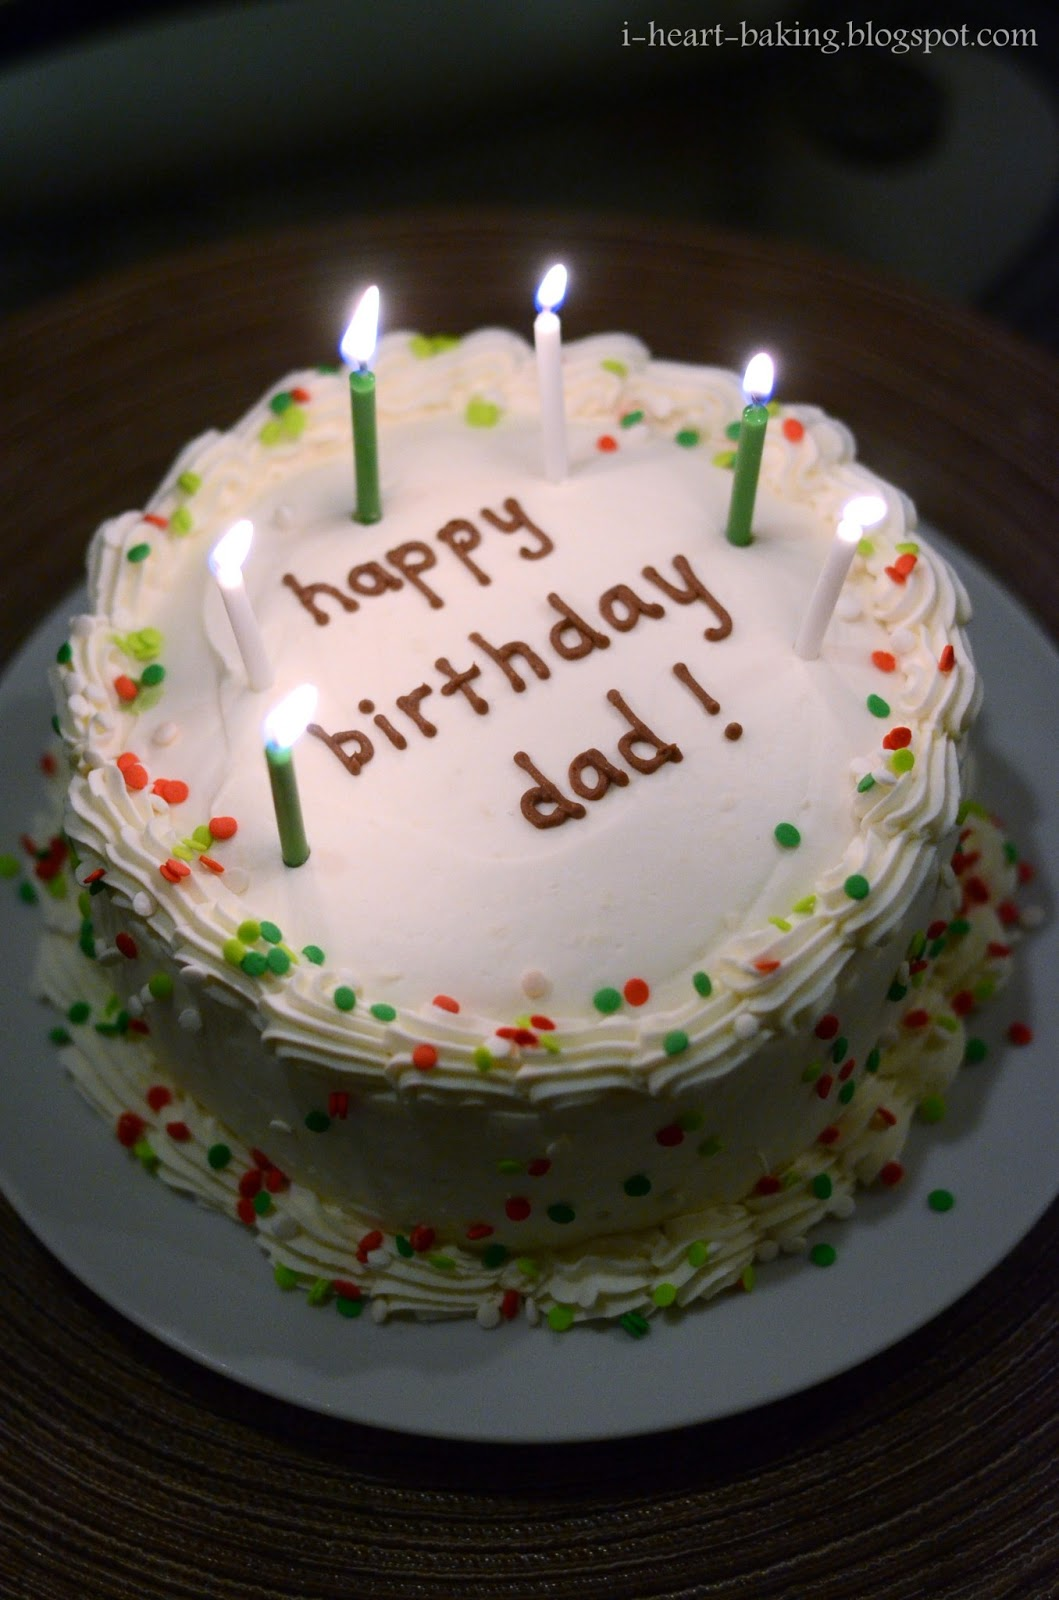 Birthday Cake For Papa With Candle Image Inspiration of Cake and